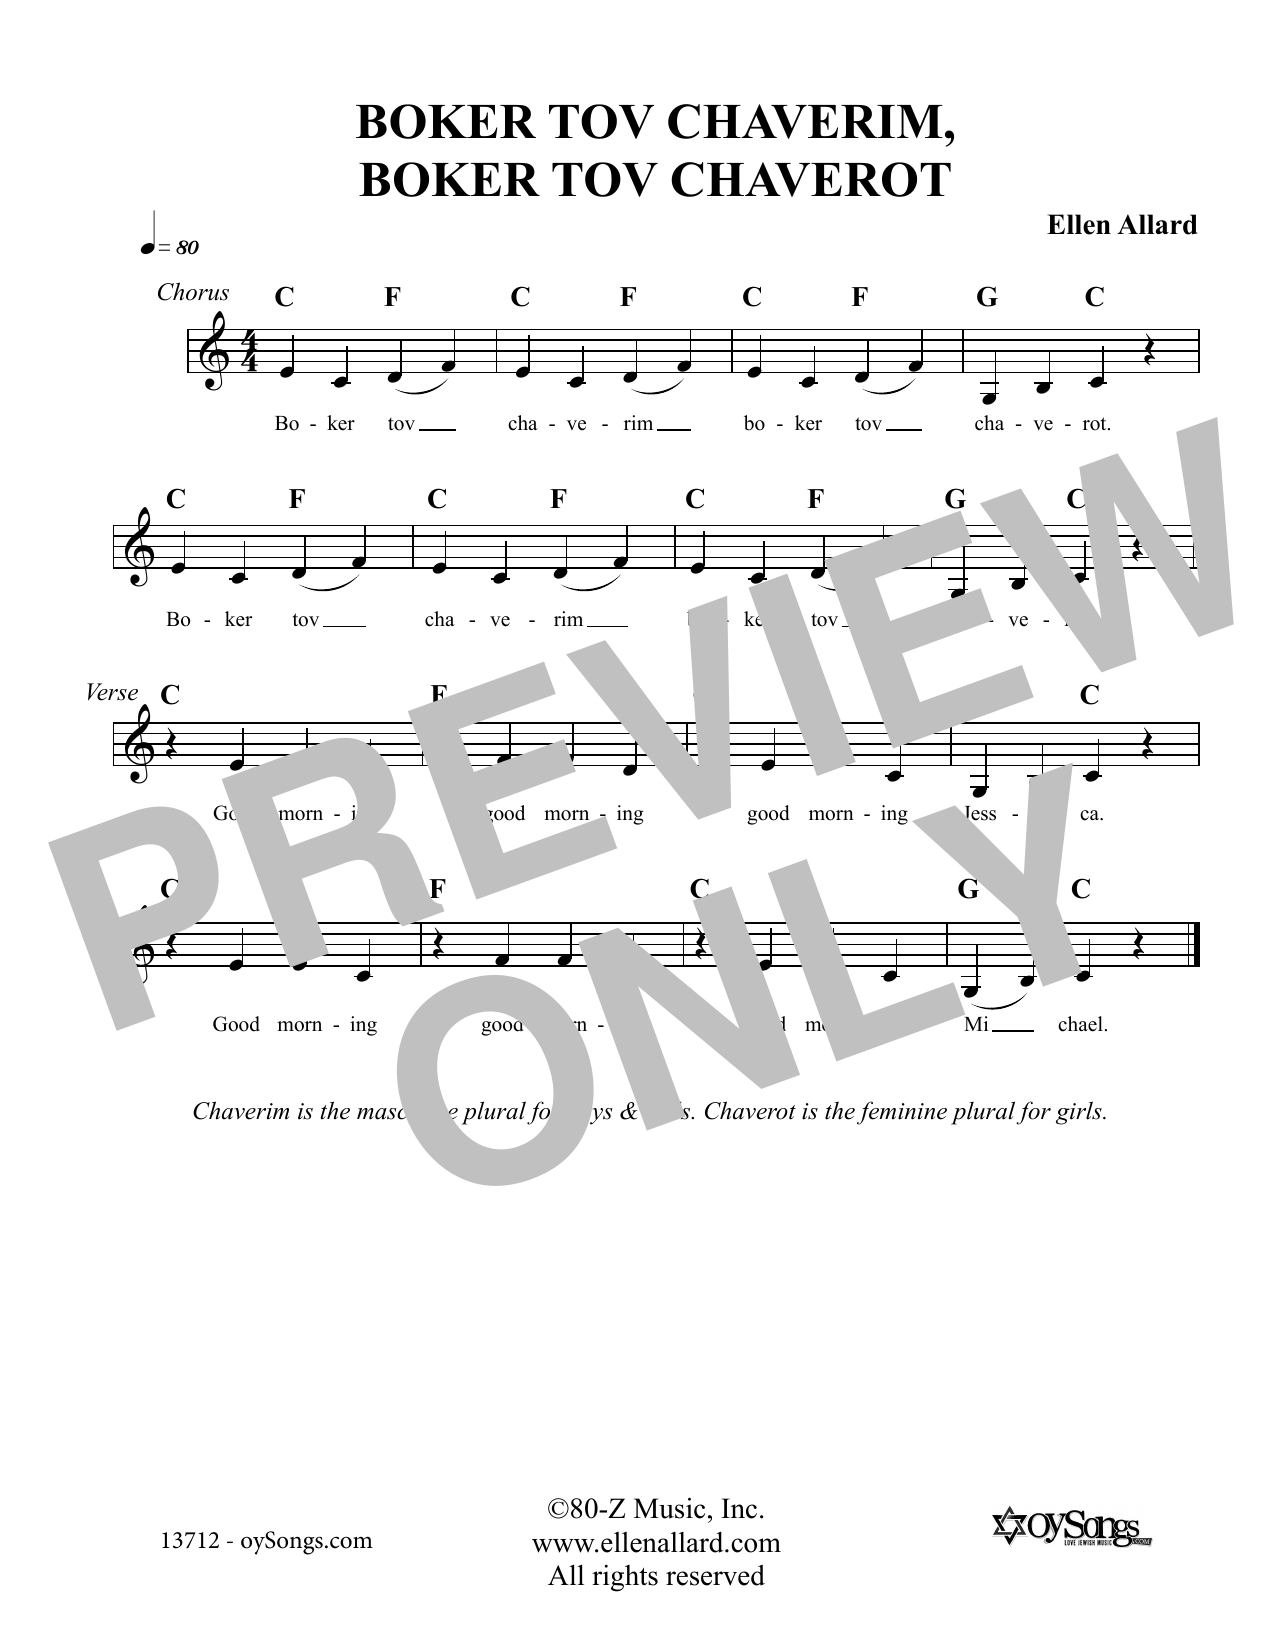 Boker Tov Chaverim Chaverot (Melody Line, Lyrics & Chords)